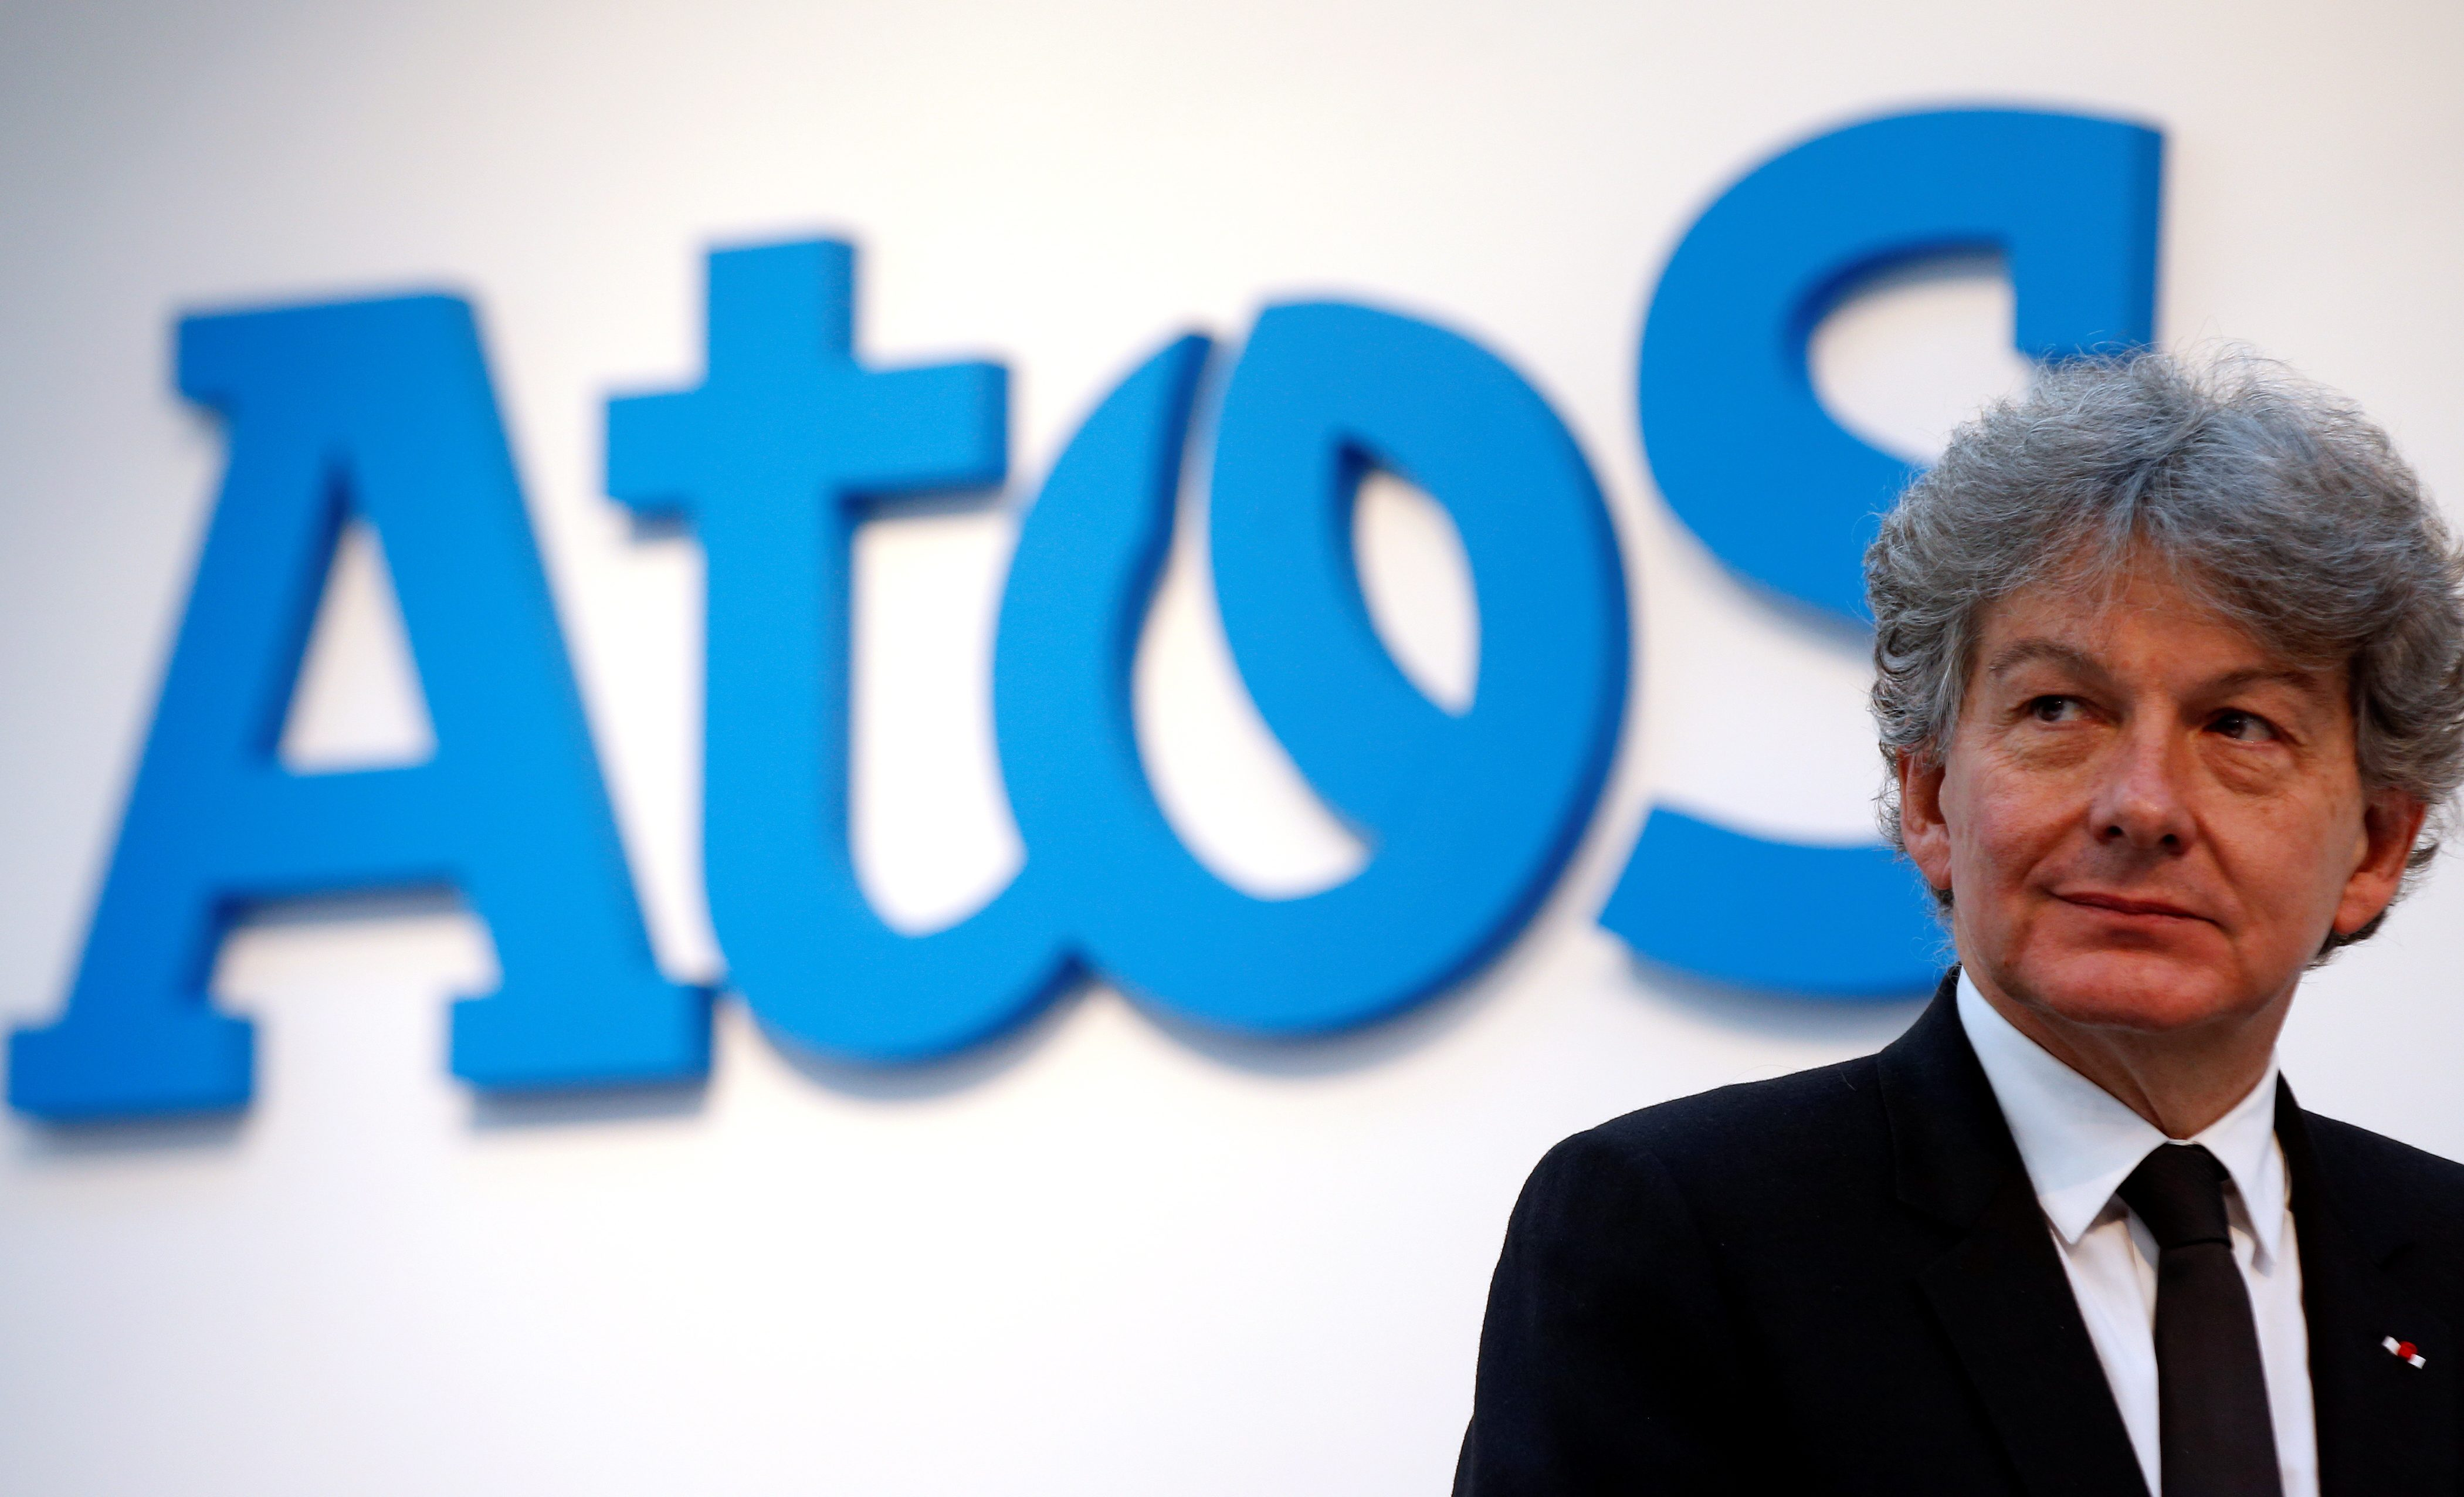 Atos jumps on proposed all-cash takeover offer for Gemalto